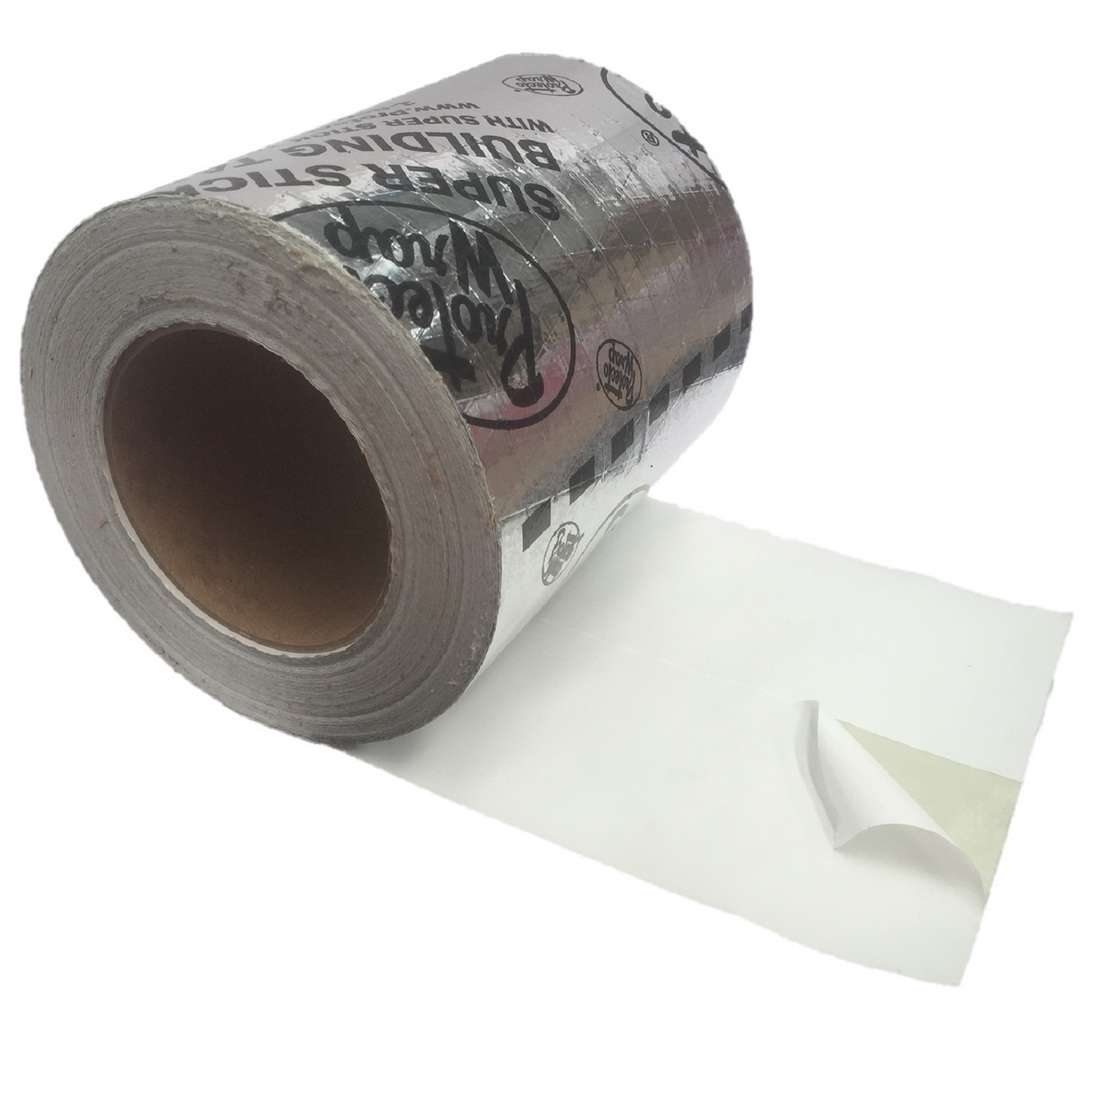 Protecto Superstick Building Sill Tape 200mm x 23m